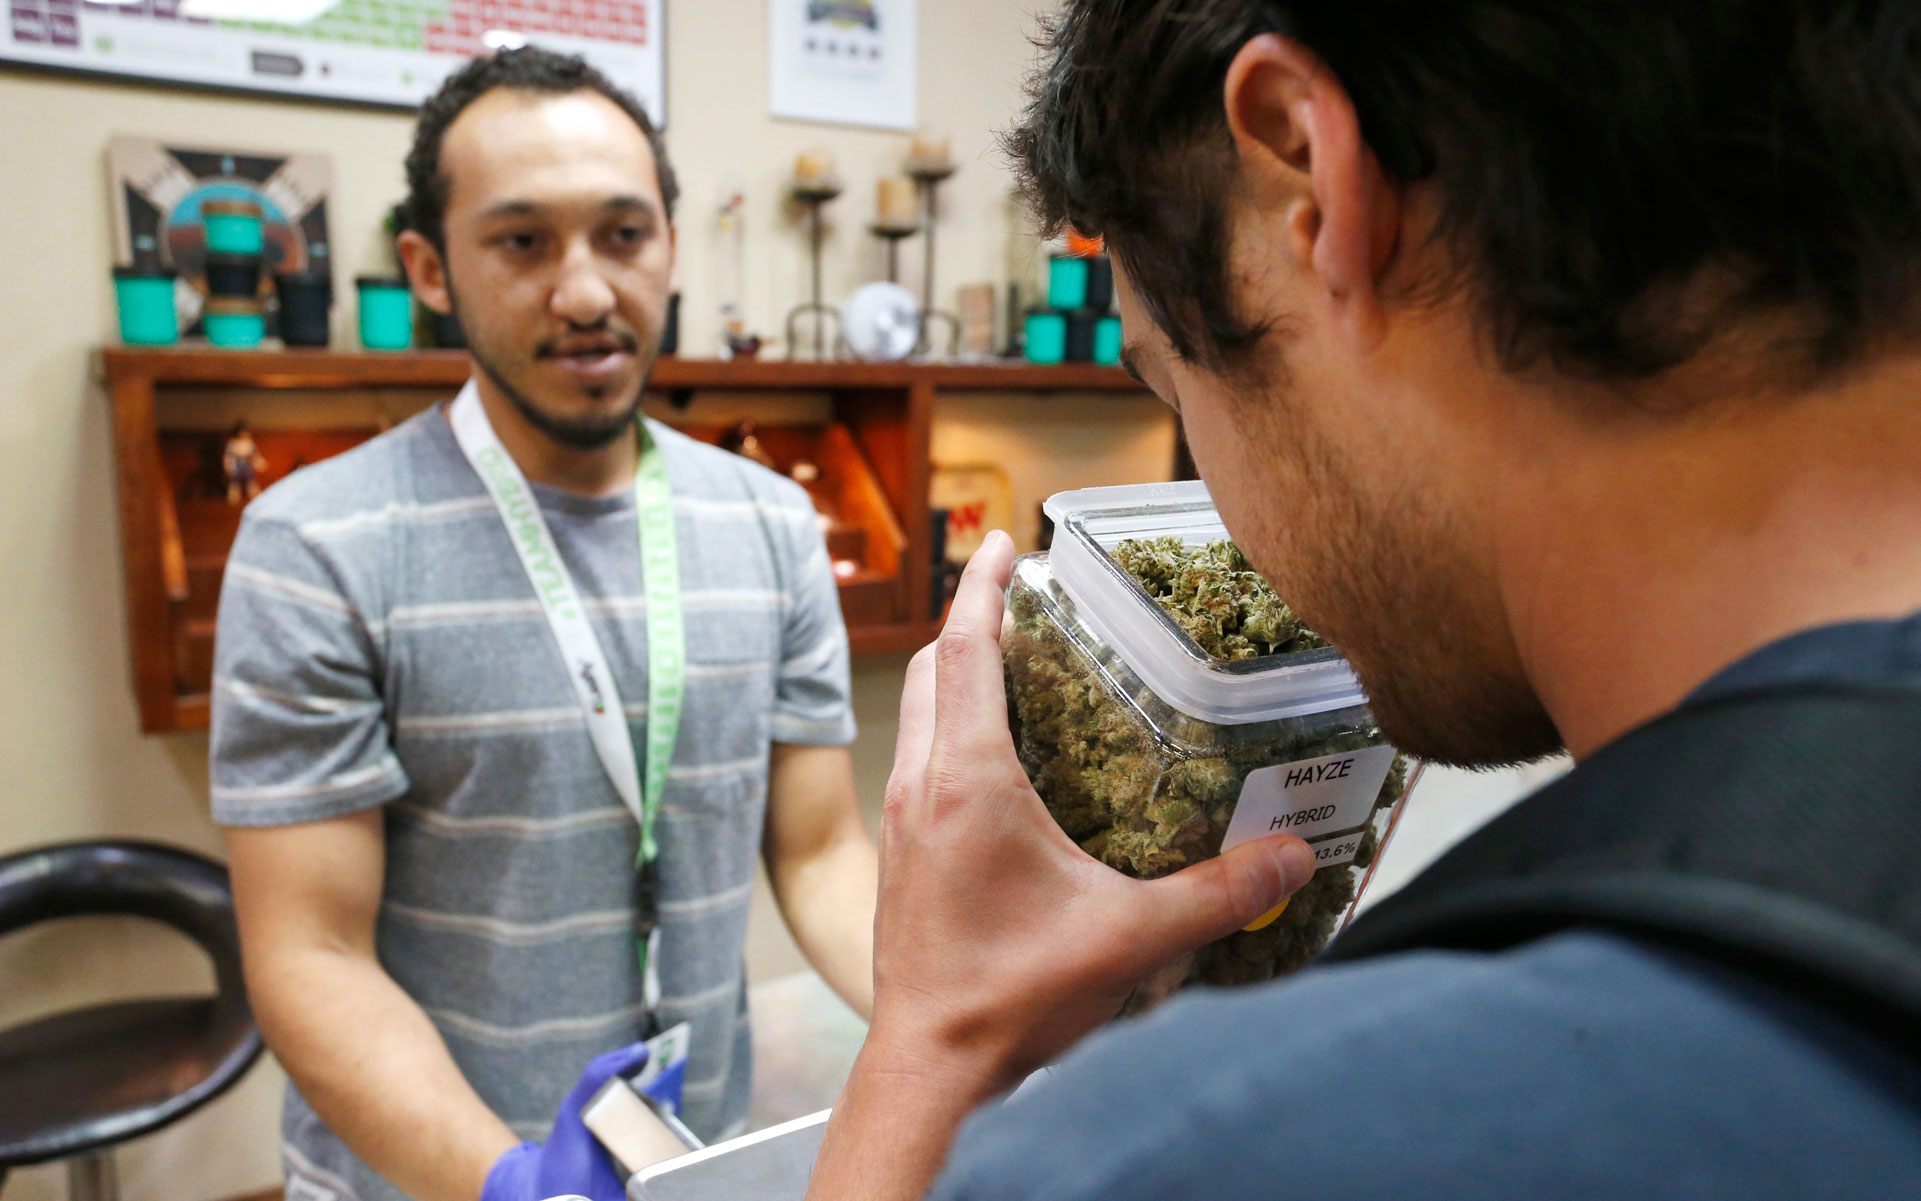 Colorado cannabis sales have resulted in more than $1 billion in taxes for the state of Colorado